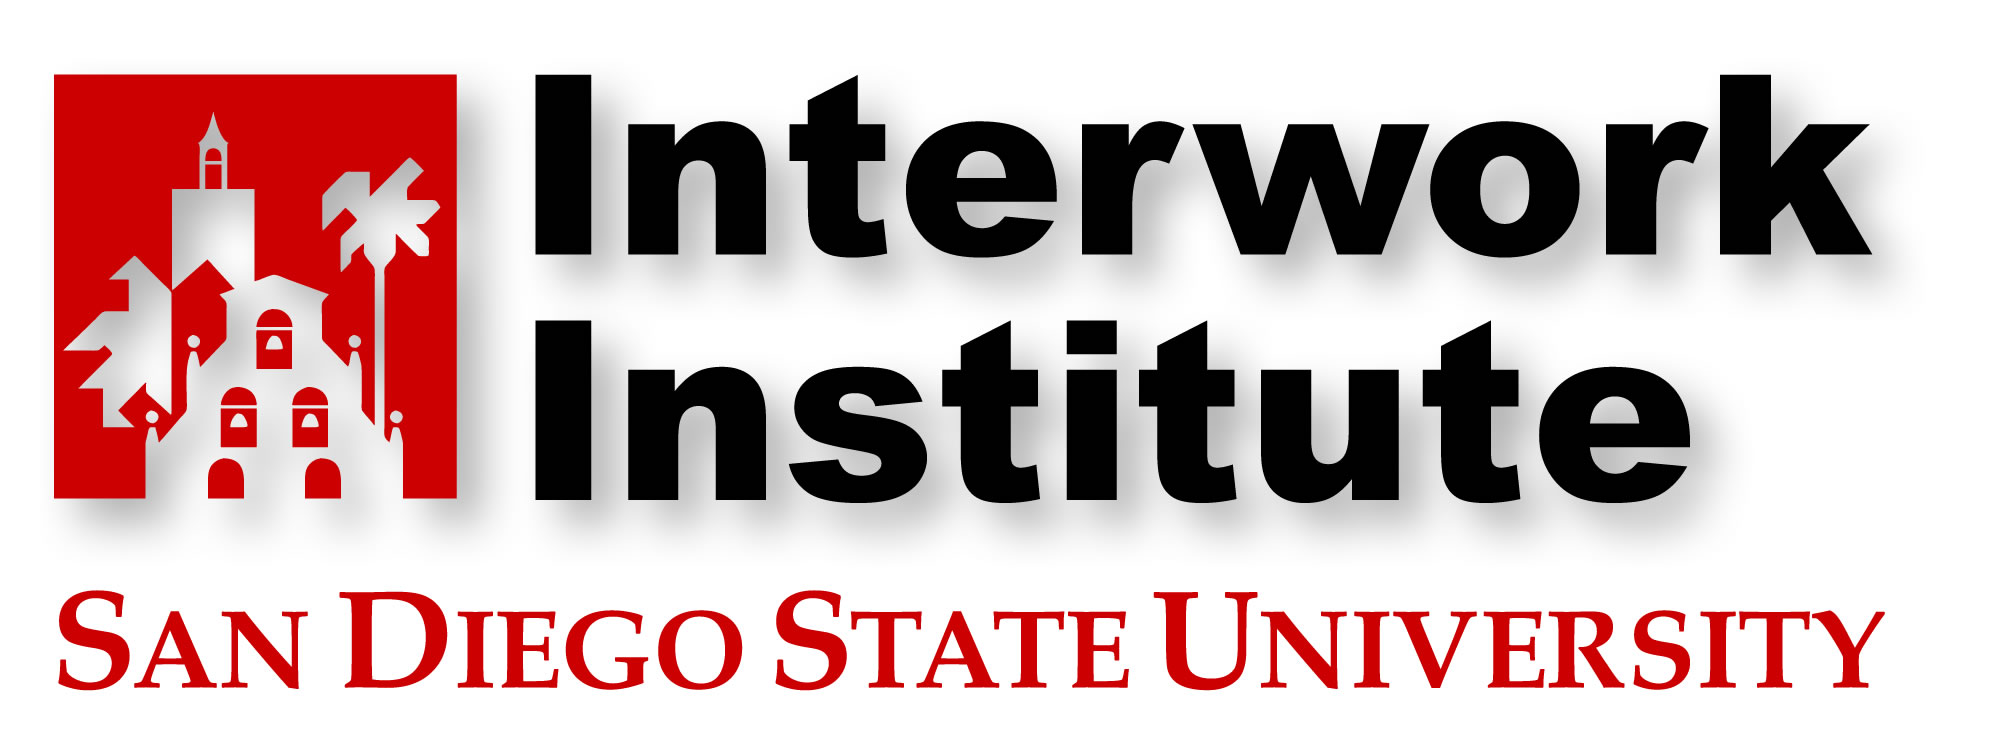 Interwork Institute